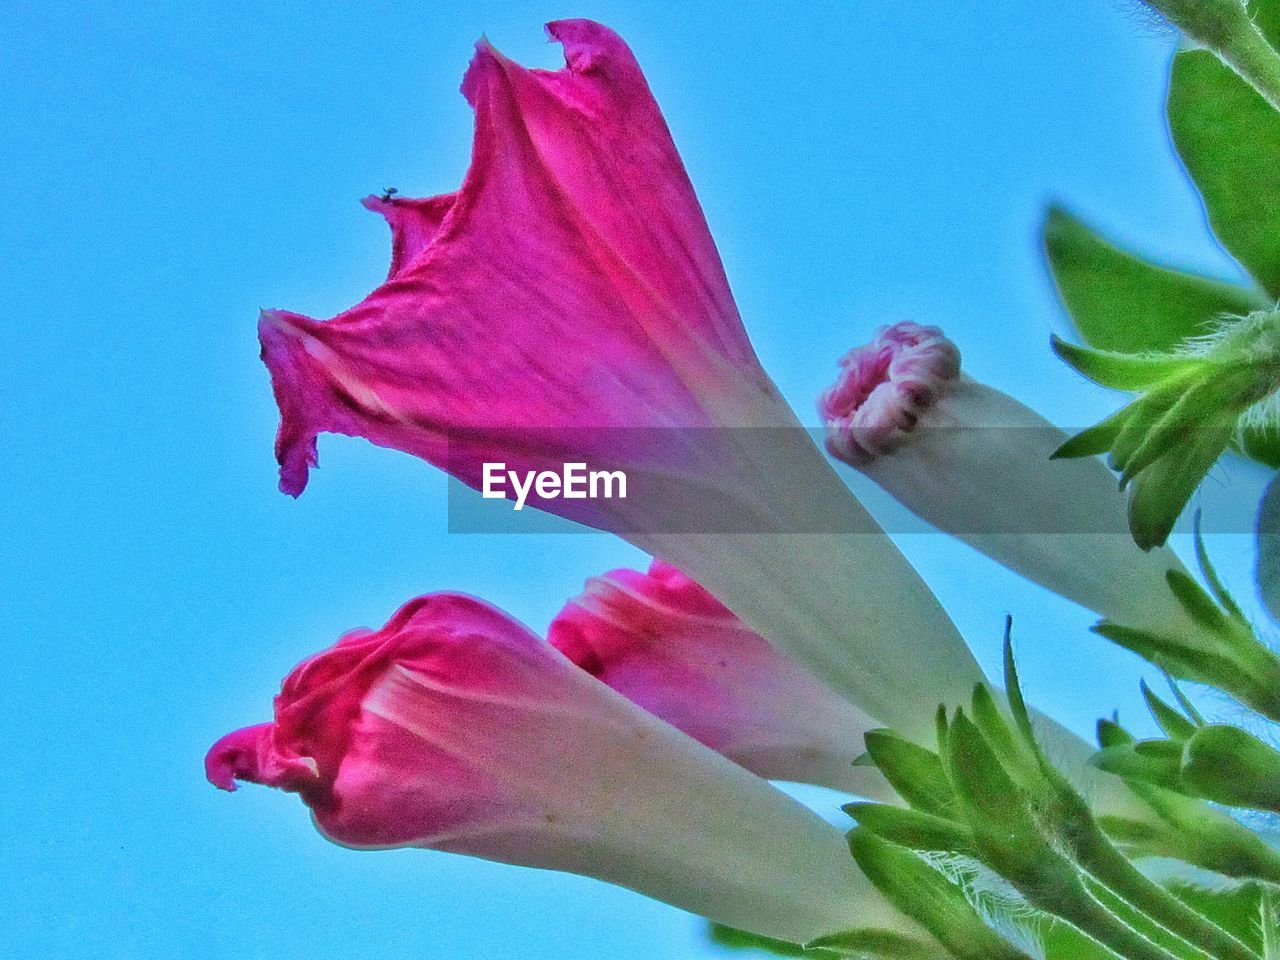 flowering plant, flower, vulnerability, fragility, petal, beauty in nature, plant, freshness, close-up, pink color, nature, growth, inflorescence, no people, flower head, day, leaf, plant part, blue, outdoors, soft focus, focus, sepal